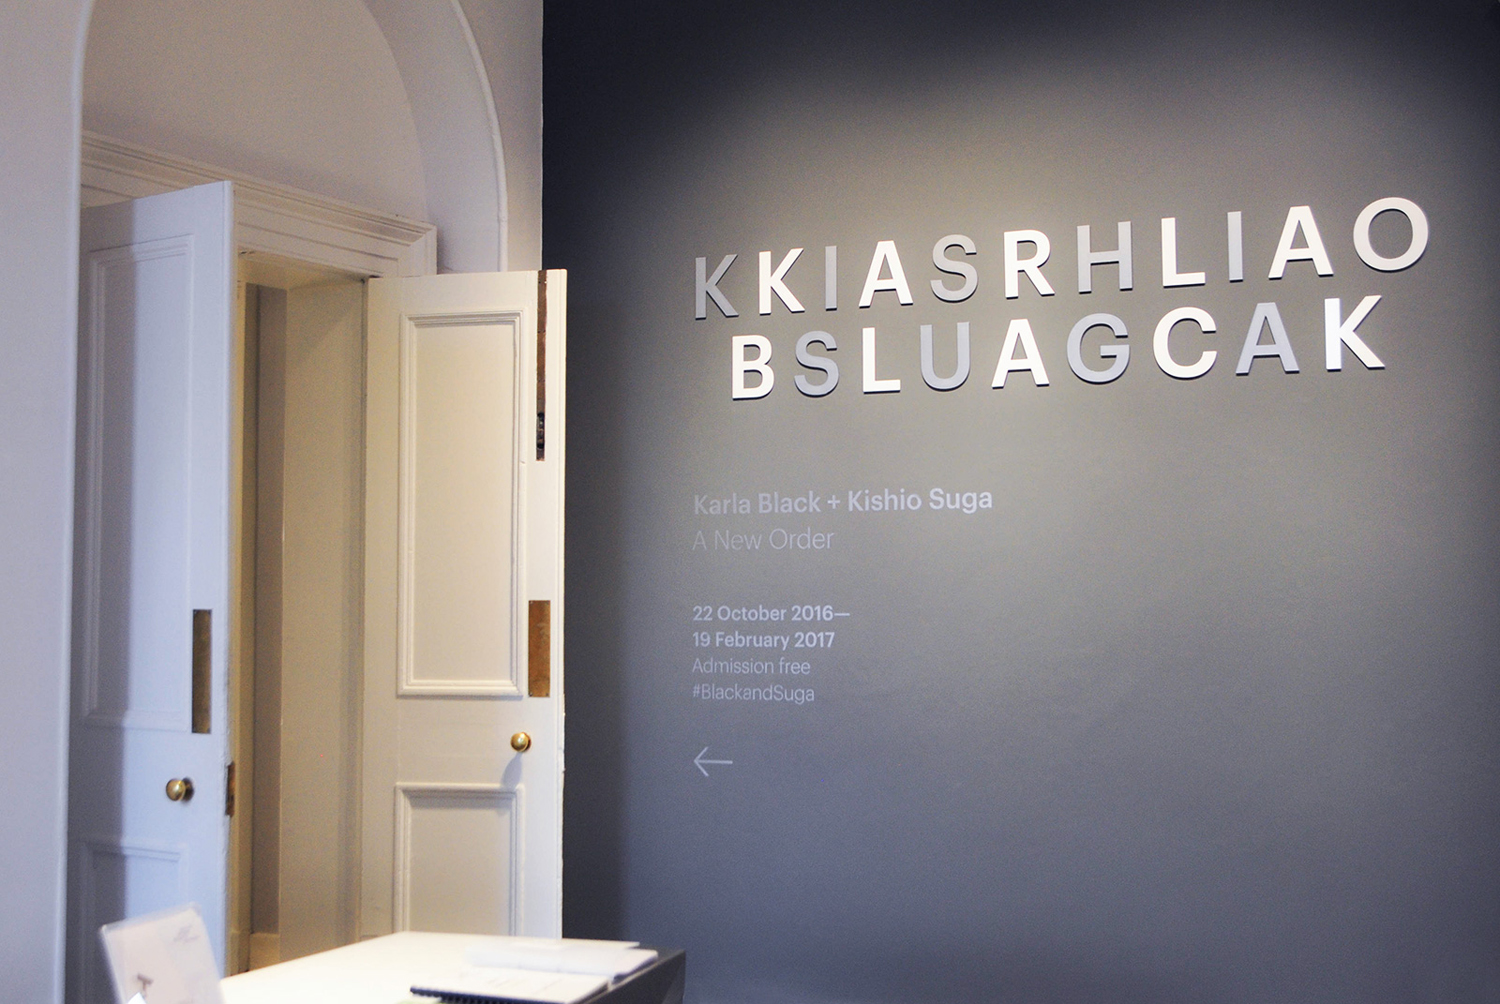 Visual identity and signage for the exhibition Karla Black + Kishio Suga: A New Order at the Scottish National Gallery of Modern Art designed by O Street, UK